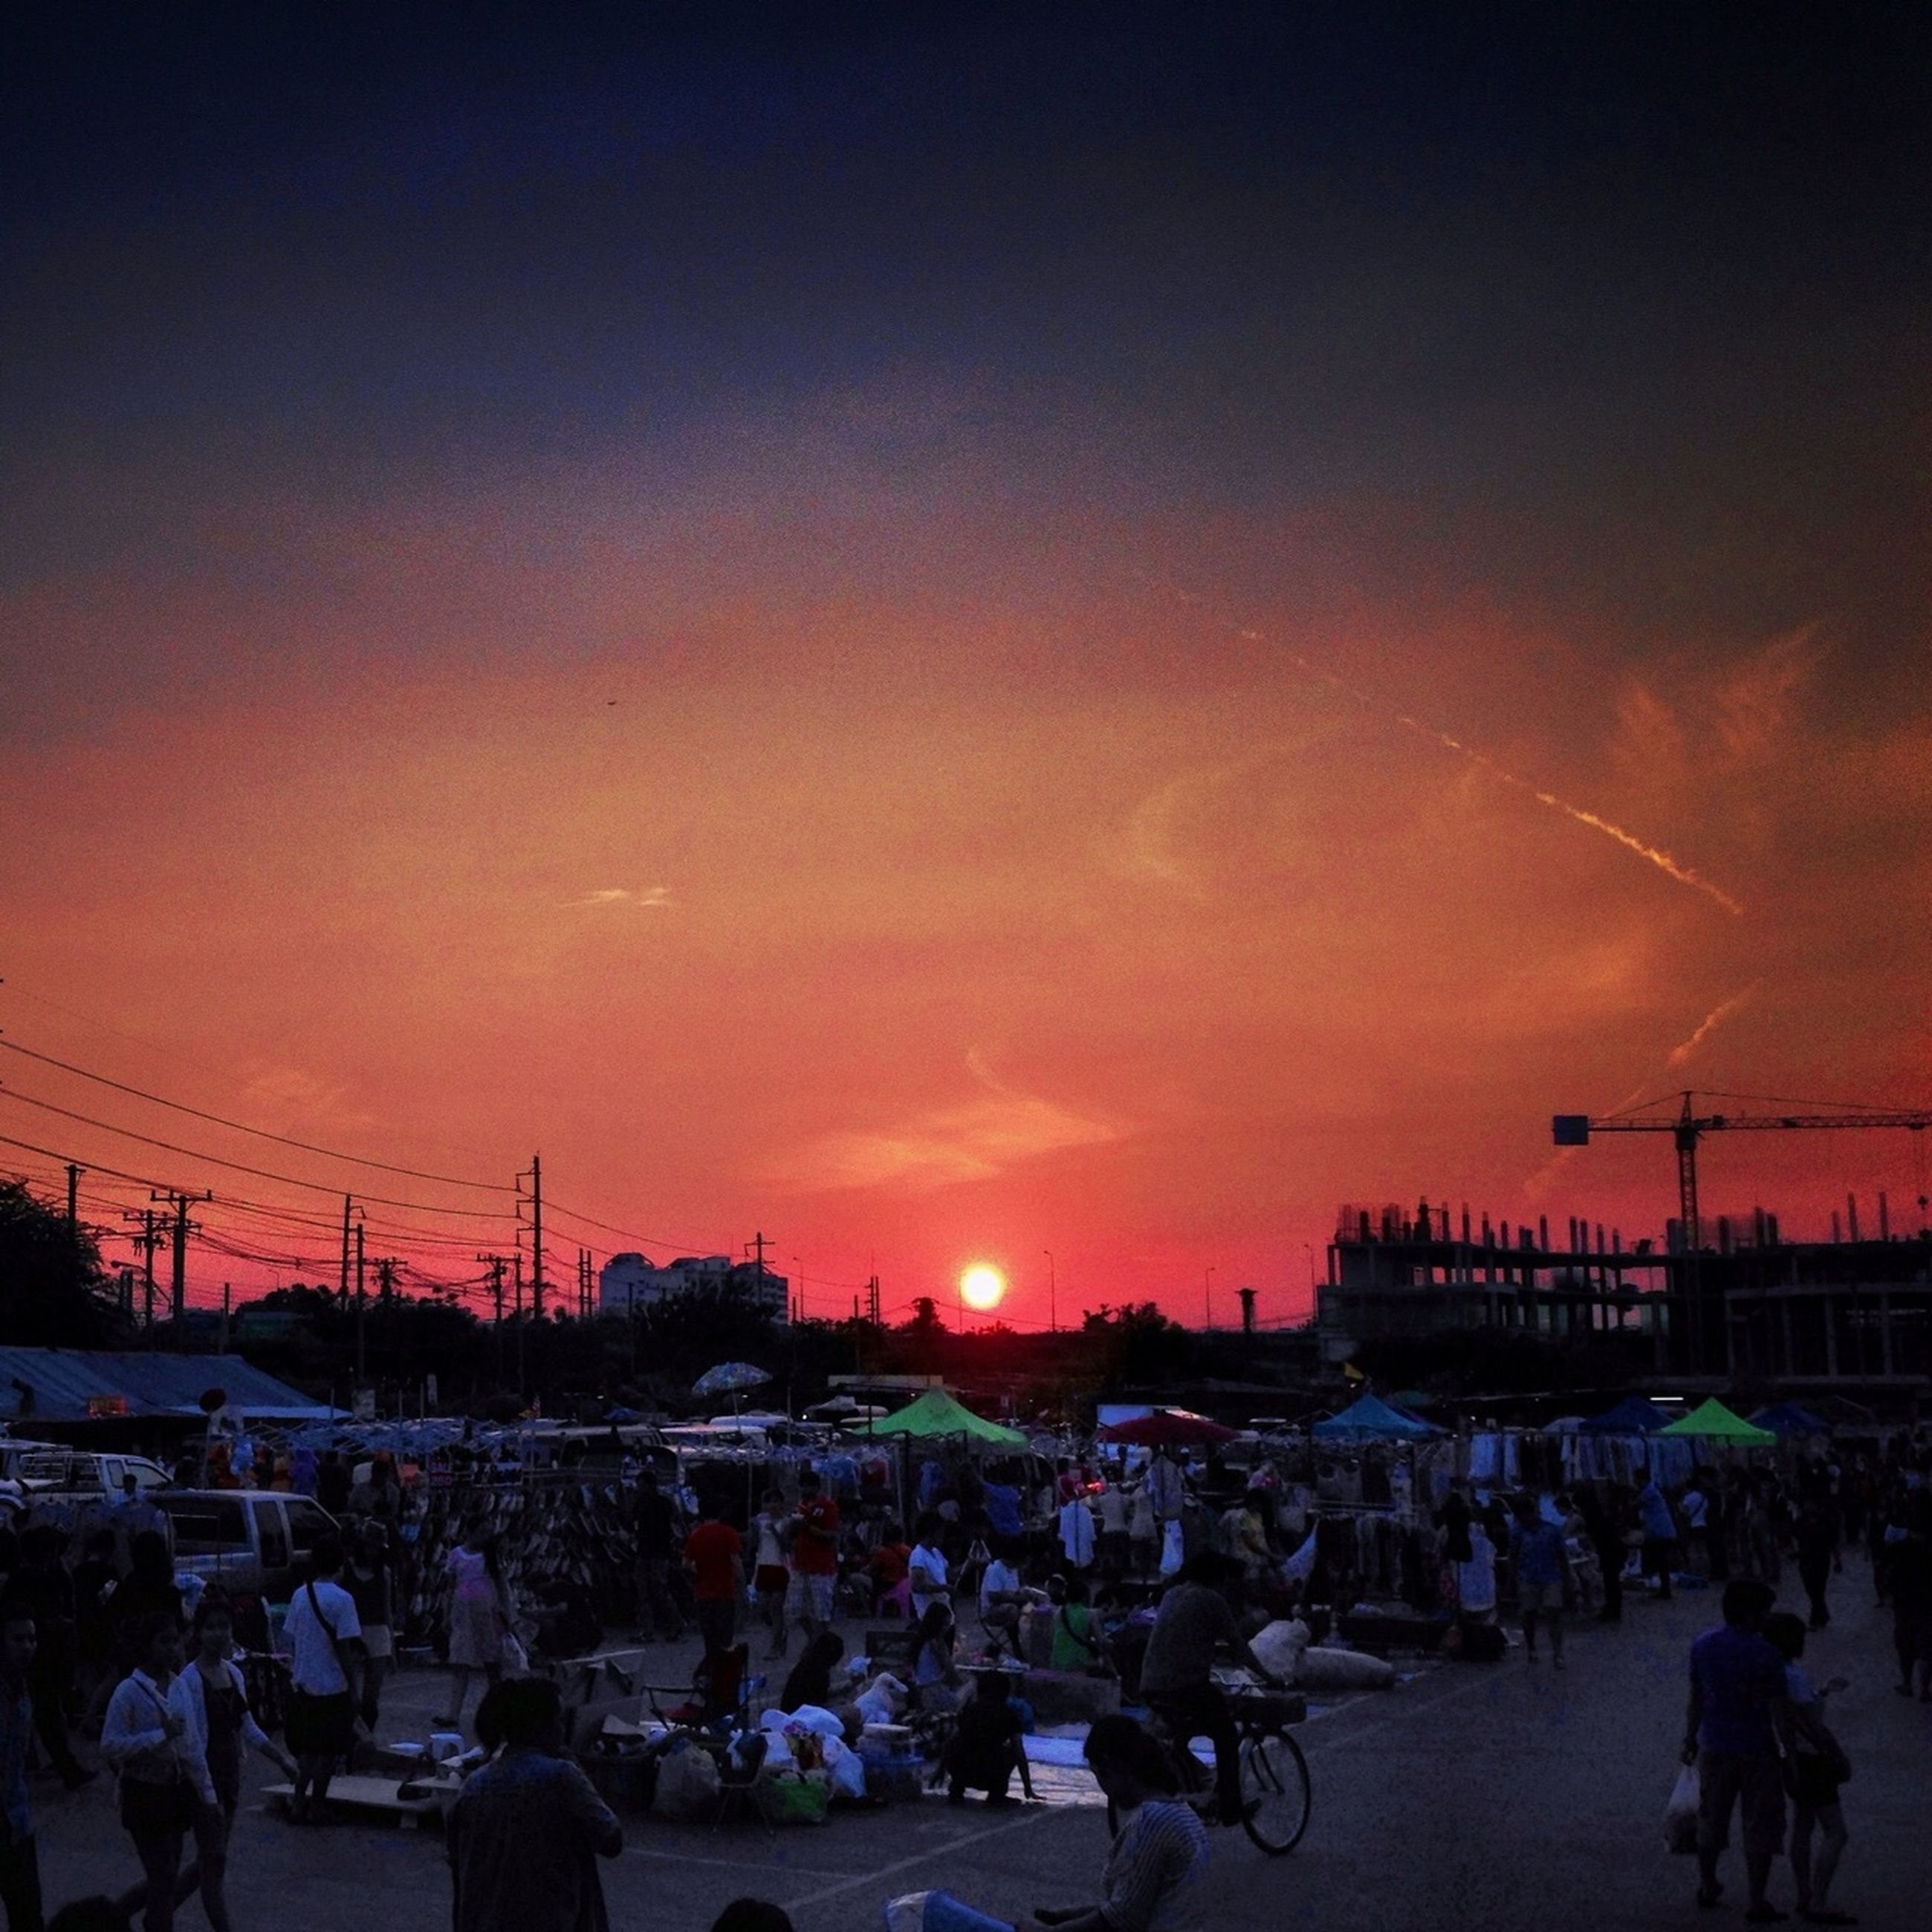 sunset, large group of people, sky, car, transportation, building exterior, street, crowd, mode of transport, land vehicle, silhouette, built structure, city, cloud - sky, architecture, outdoors, city life, dusk, men